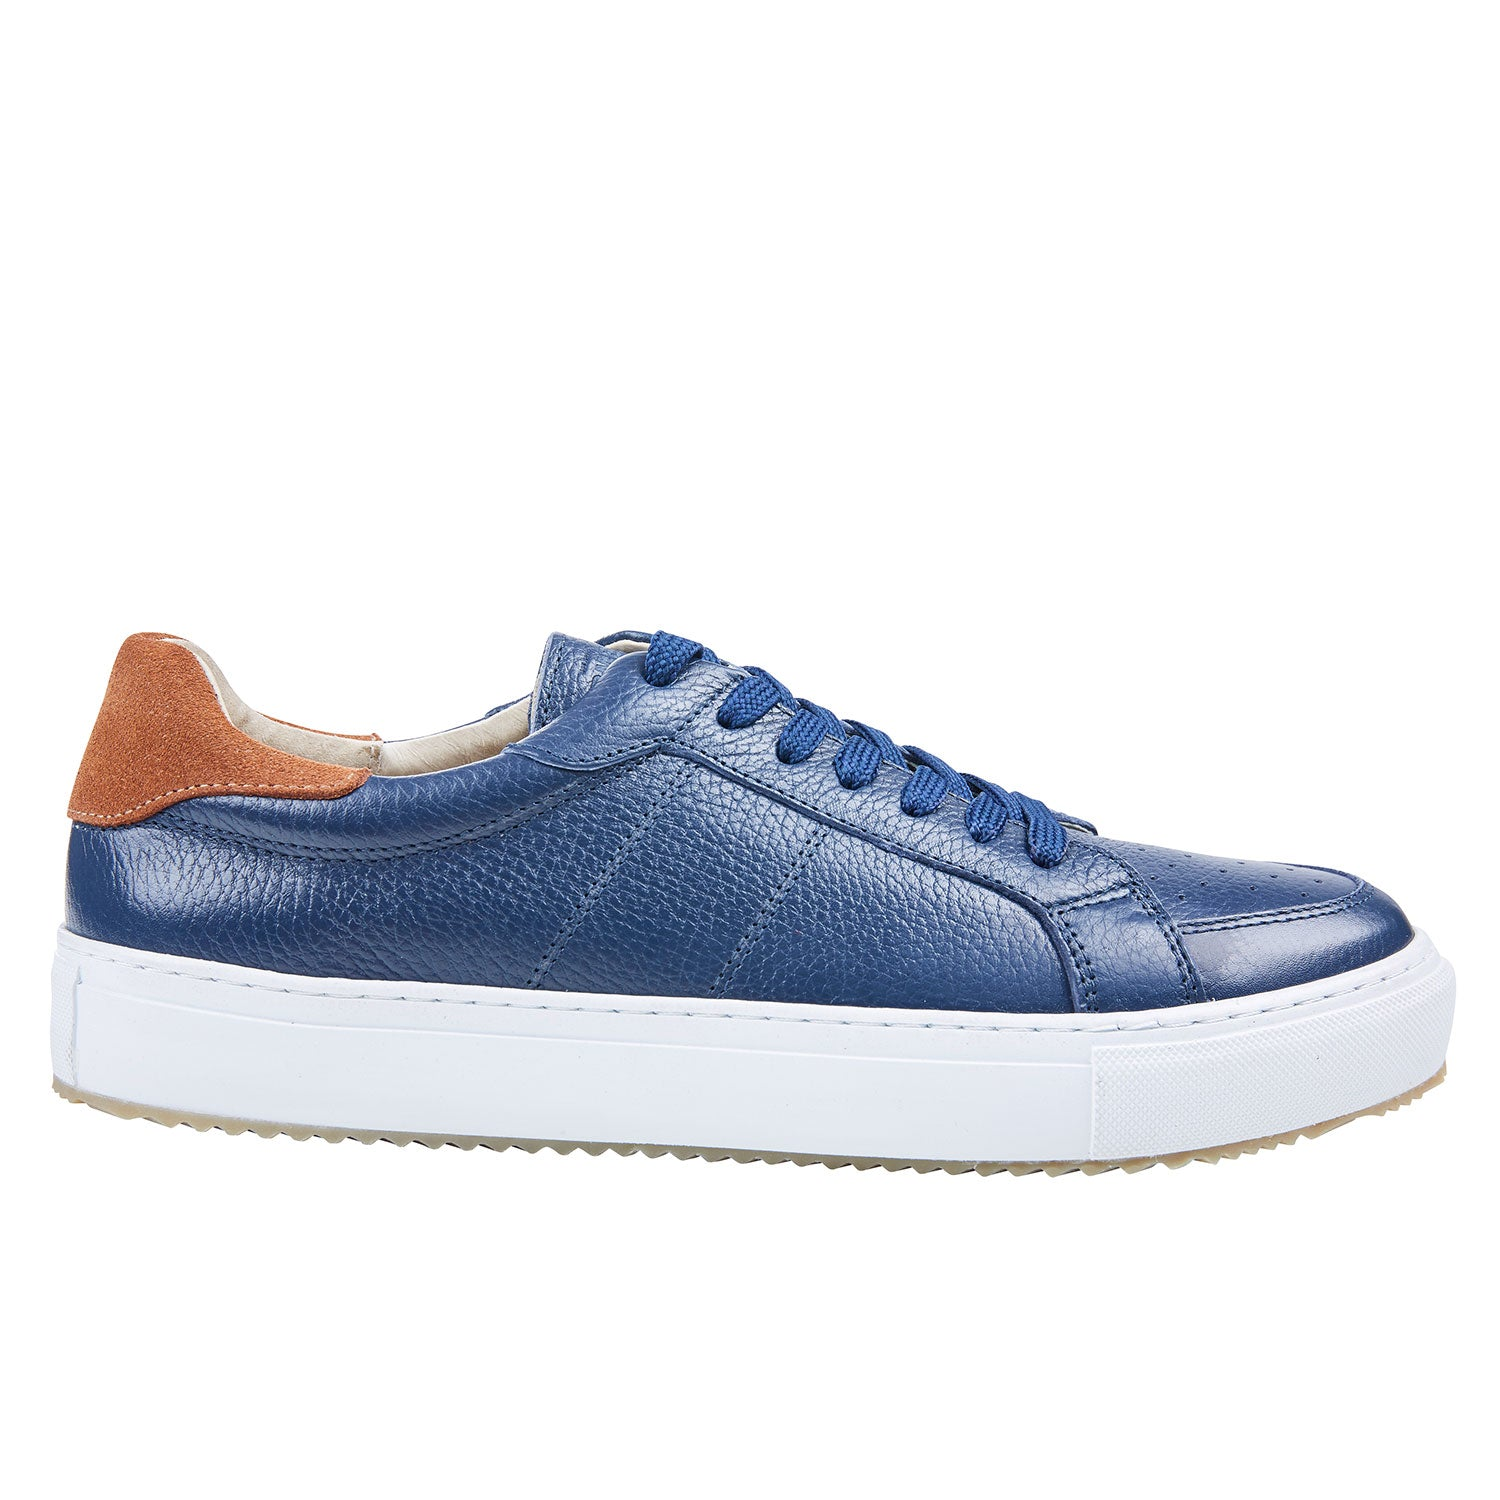 Garment Project Off Court Sneaker blau